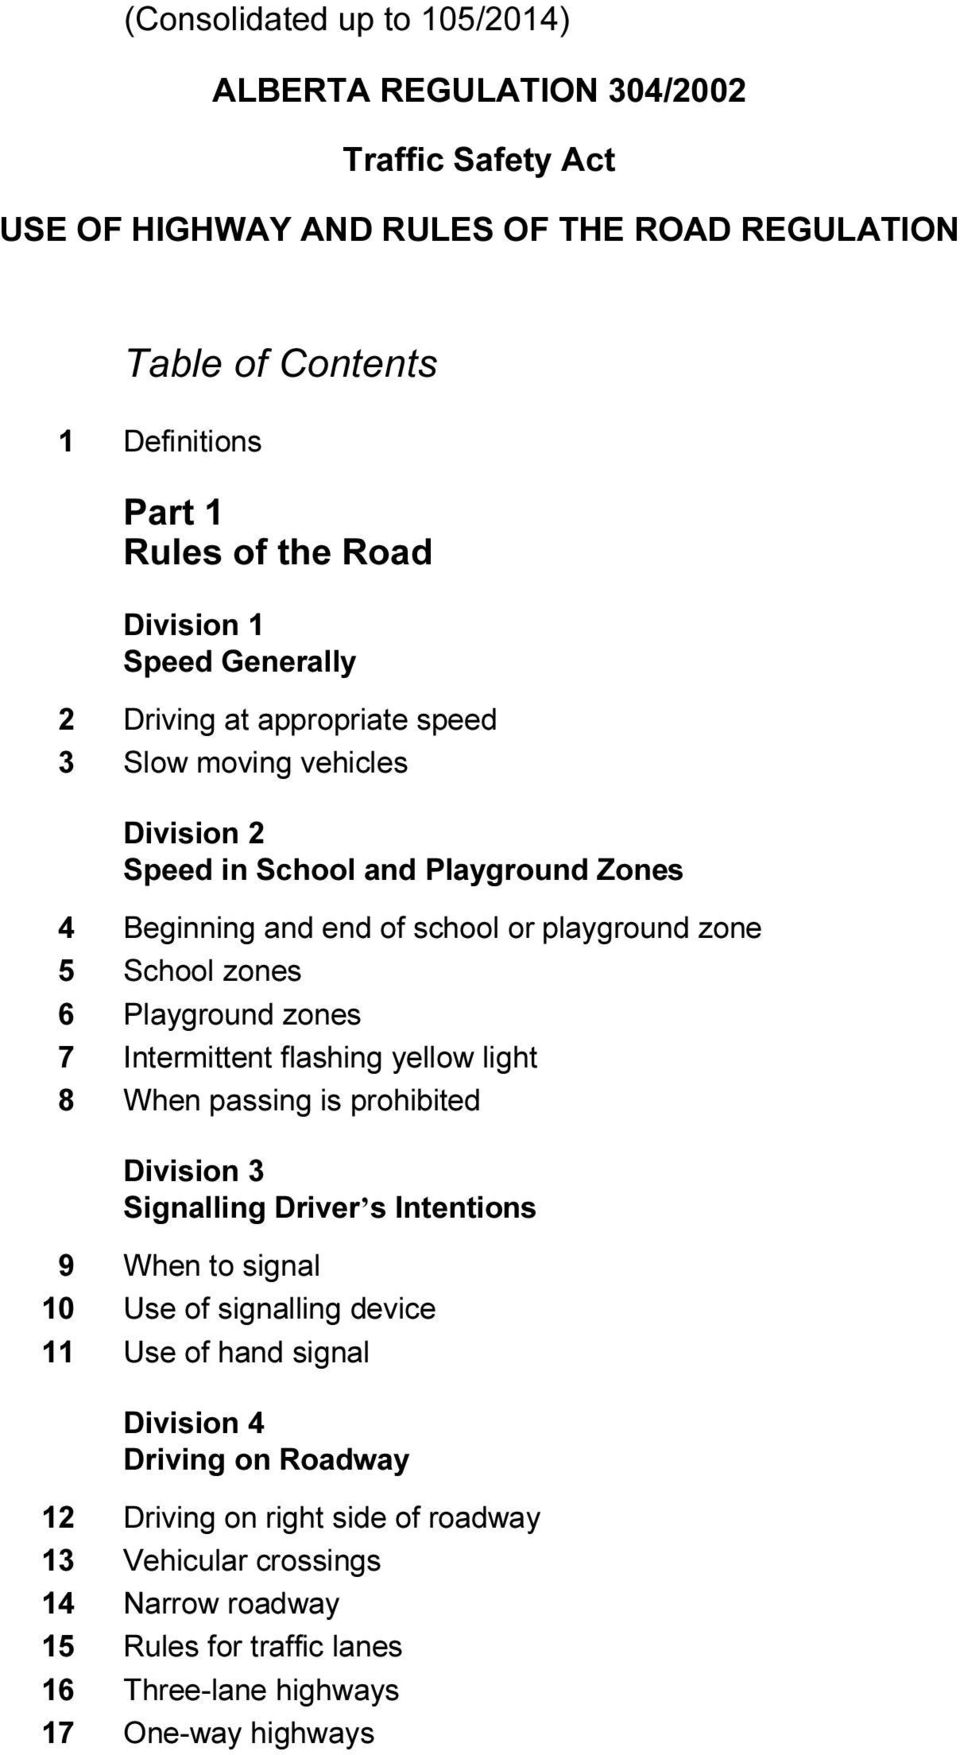 zones 6 Playground zones 7 Intermittent flashing yellow light 8 When passing is prohibited Division 3 Signalling Driver s Intentions 9 When to signal 10 Use of signalling device 11 Use